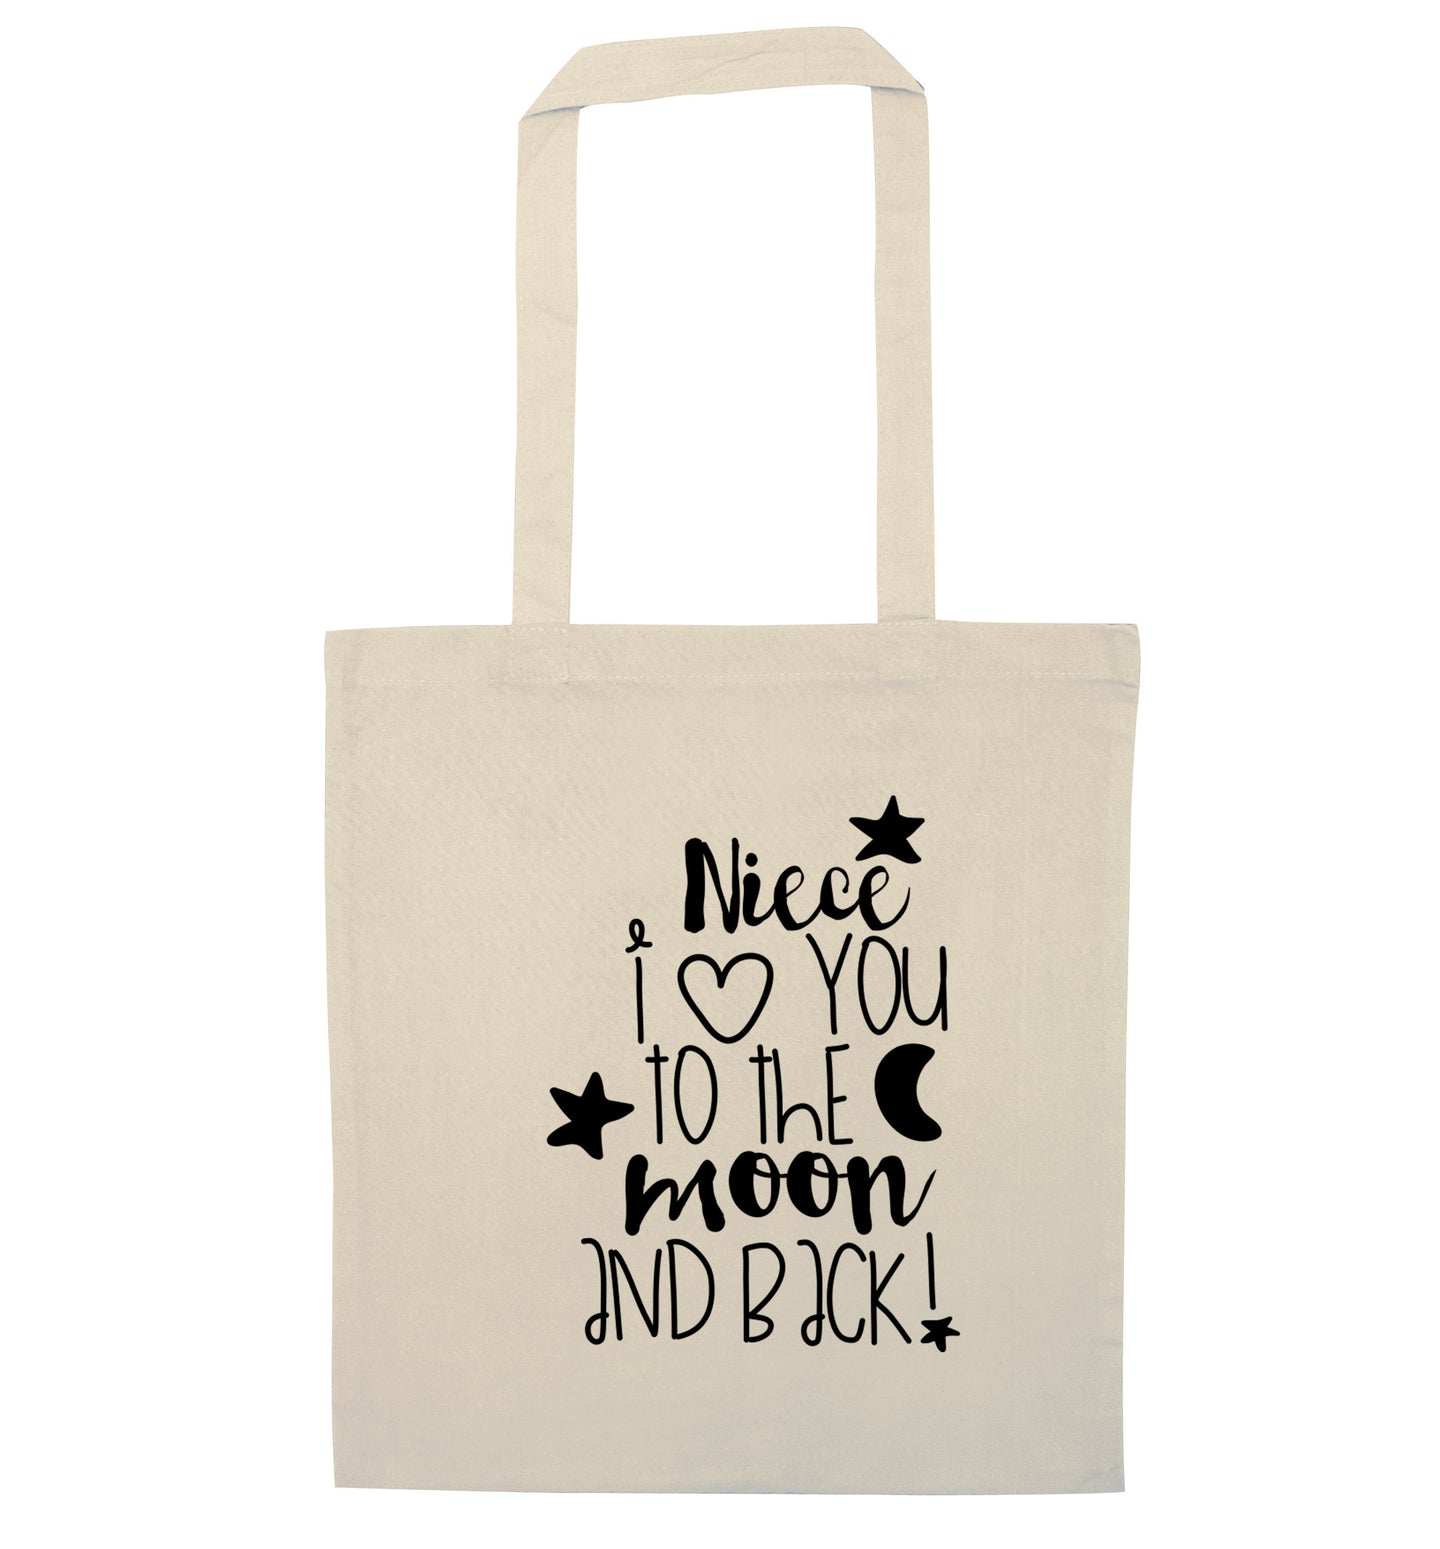 Niece I love you to the moon and back natural tote bag